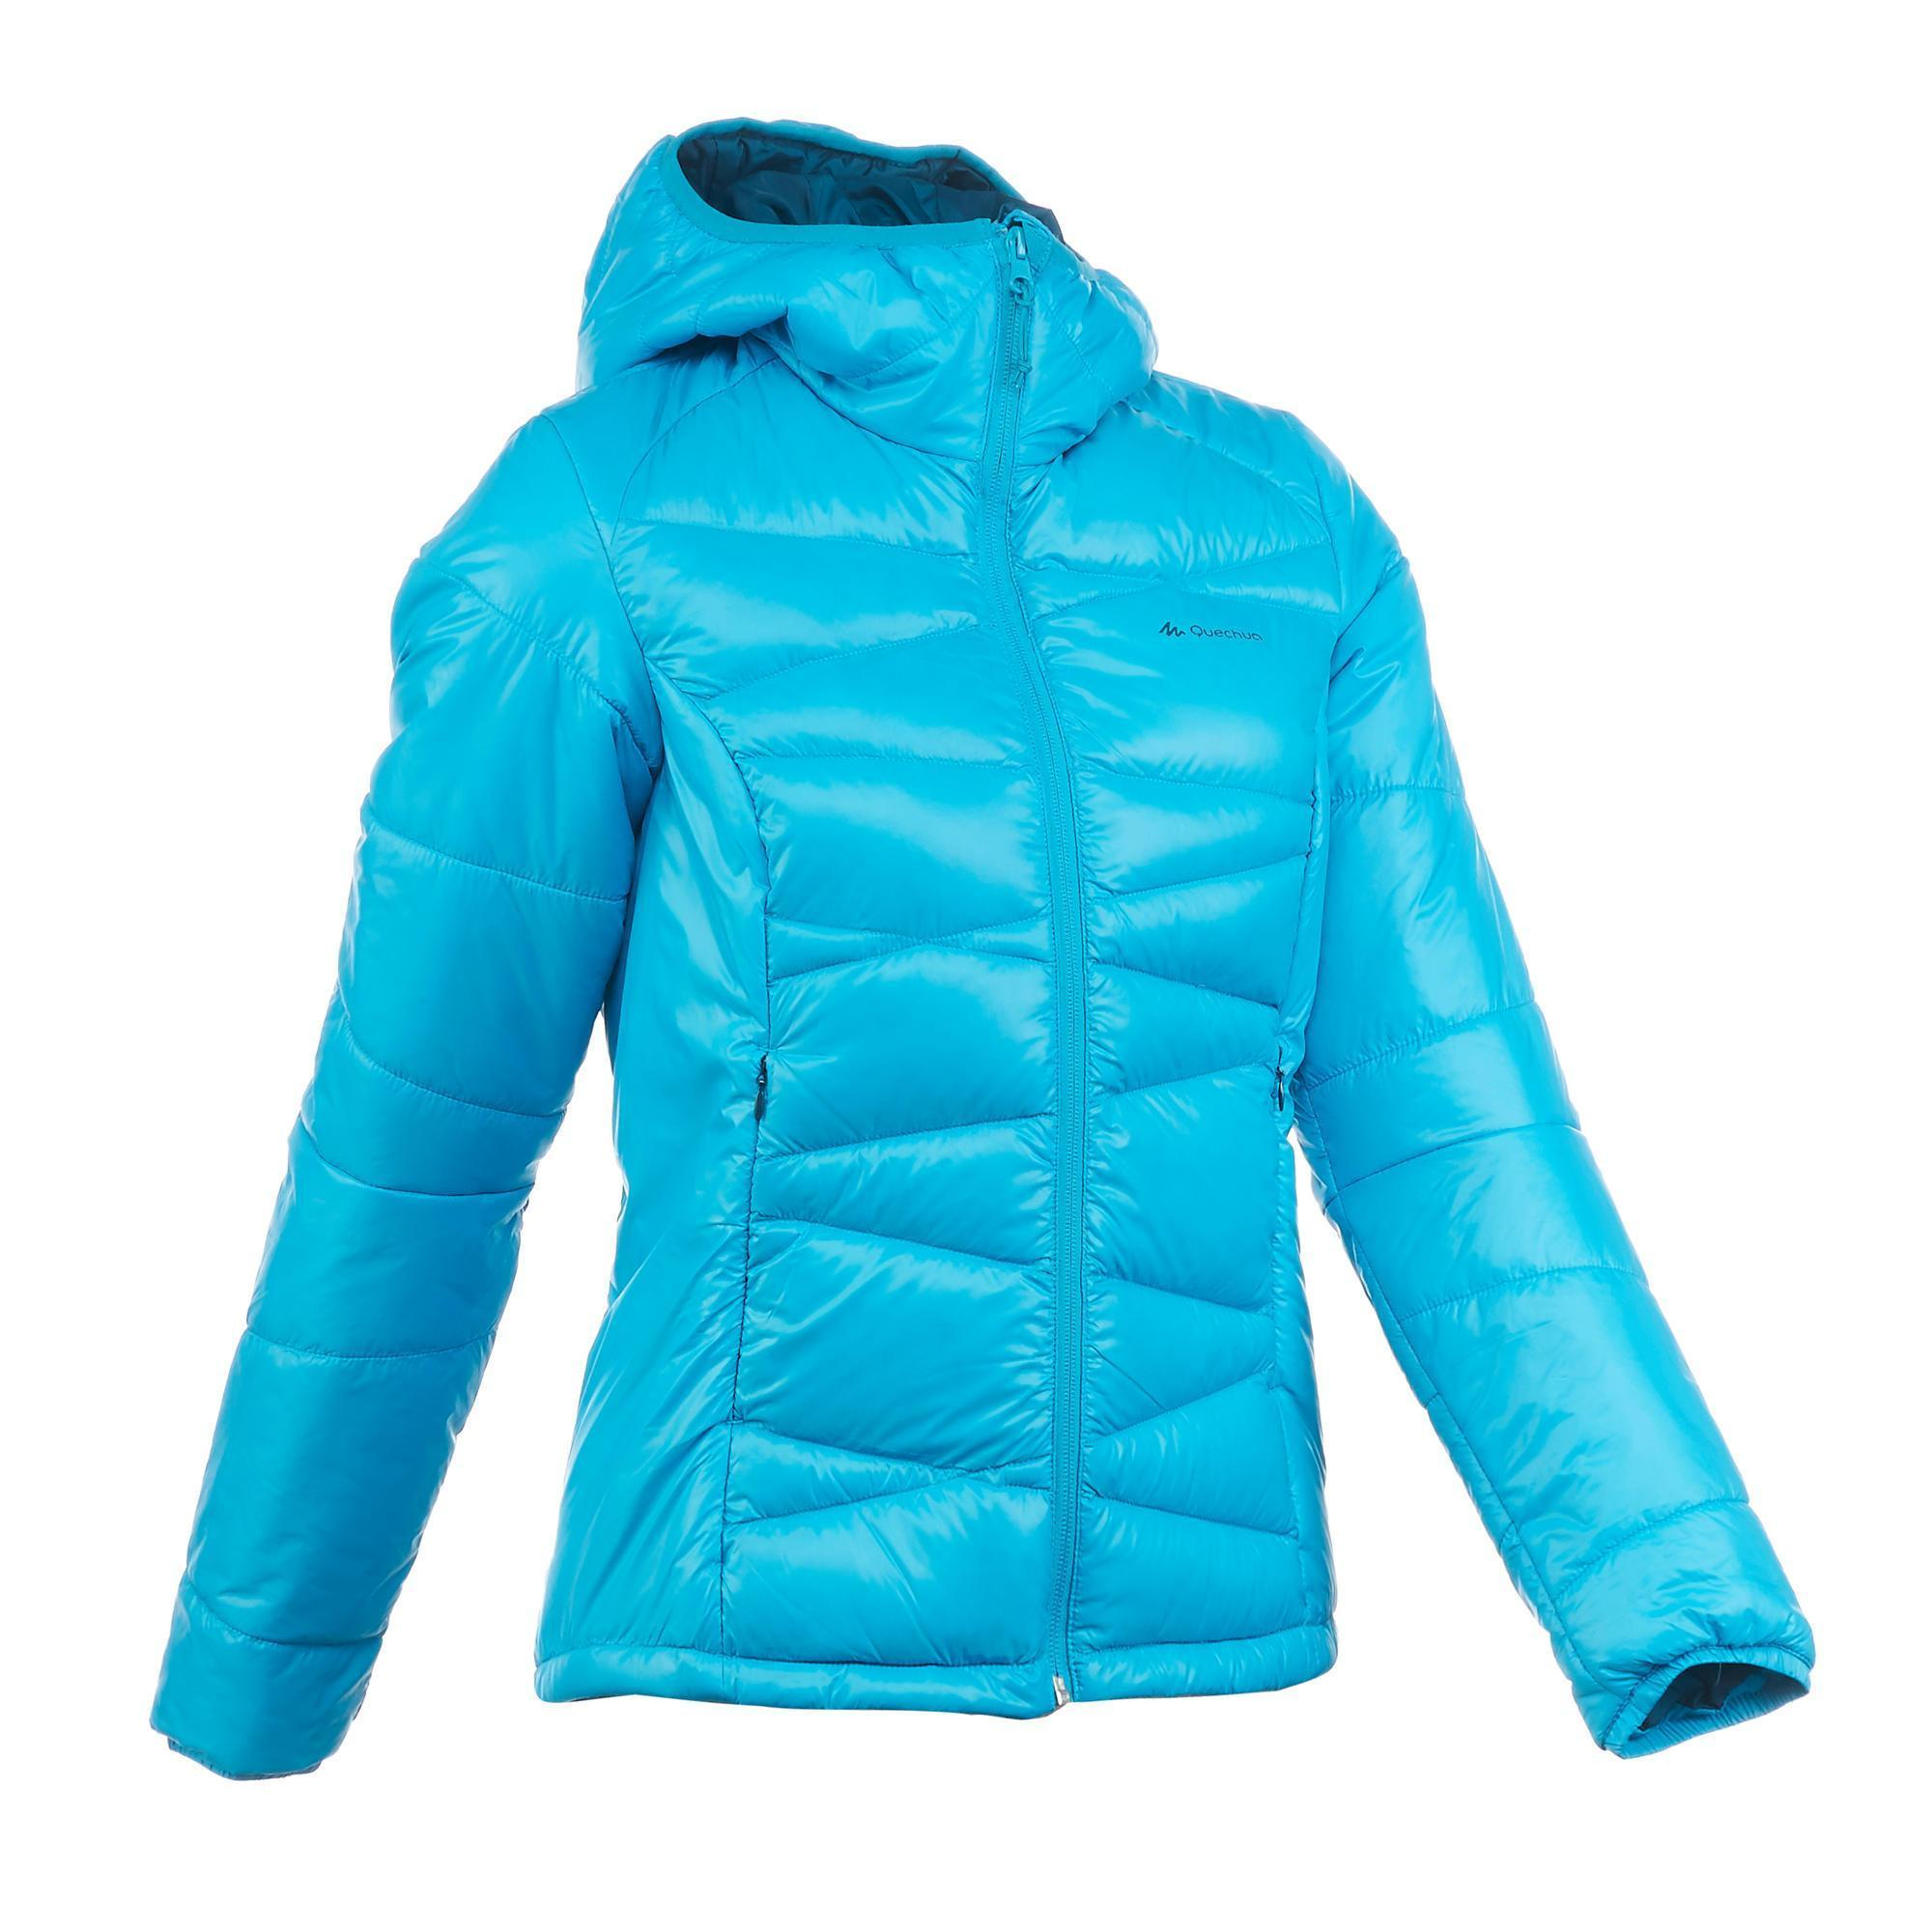 Women's X-Light 2 peacock blue trekking down jacket